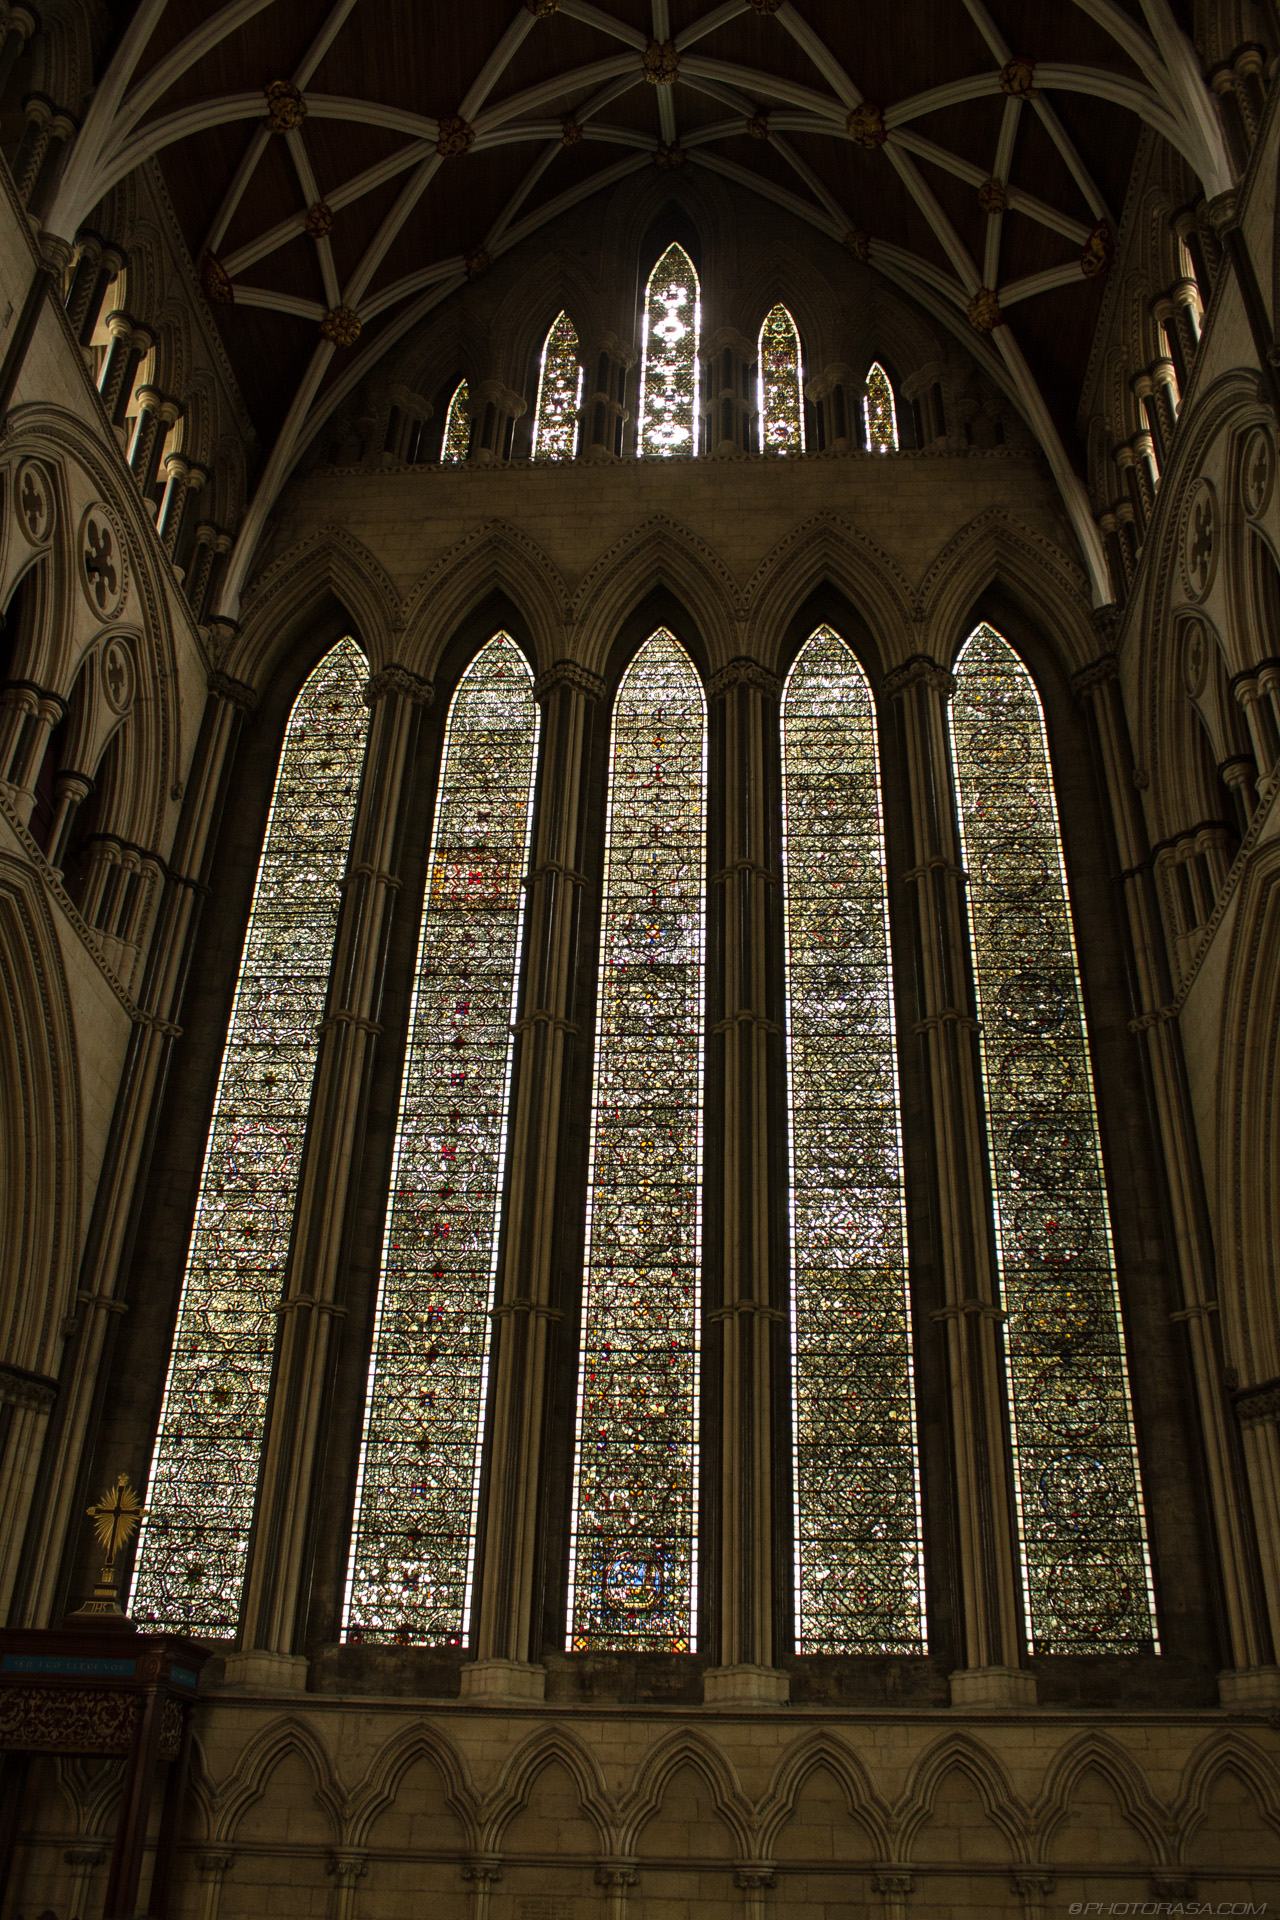 http://photorasa.com/places/yorkminster-cathedral/attachment/west-window/